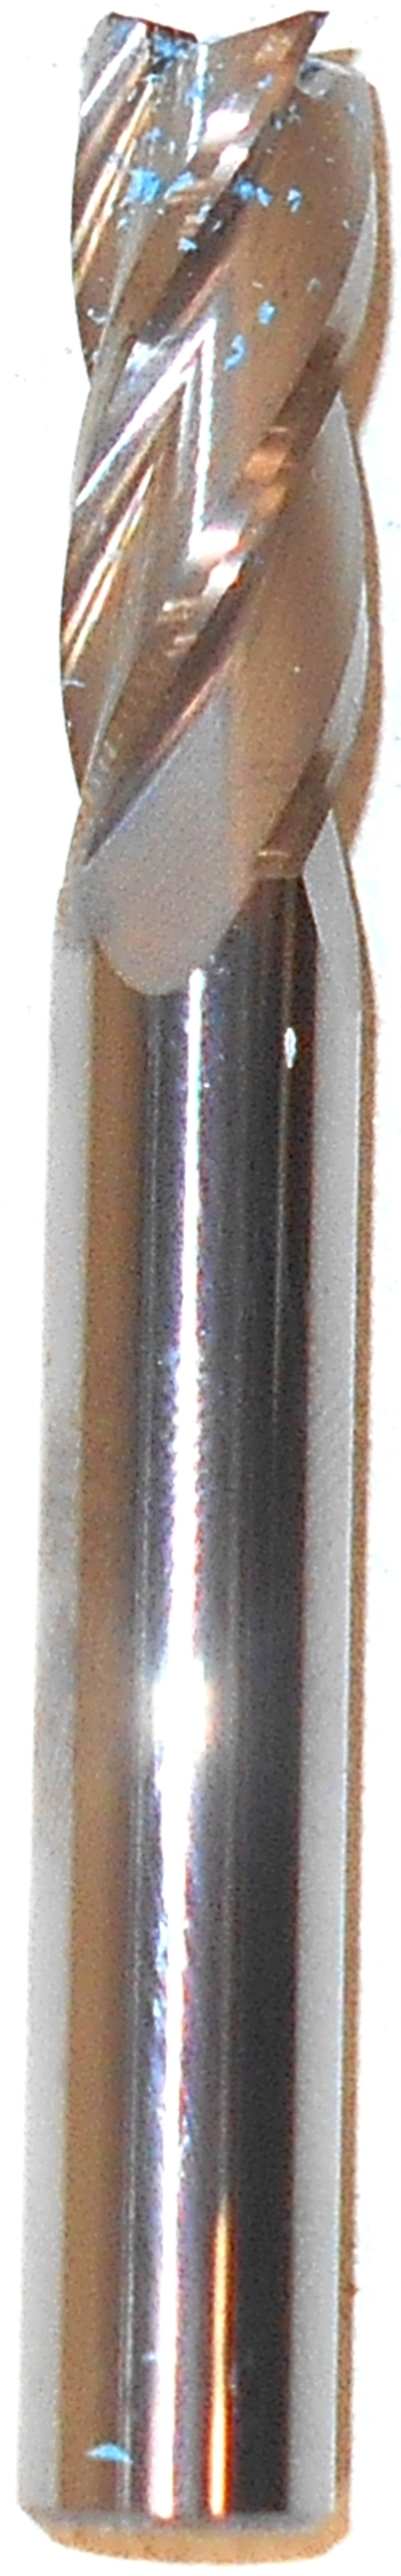 Sgs Tools 691781401492 4 Flute End Mill - 8mm Diameter - 20mm Length - Uncoated